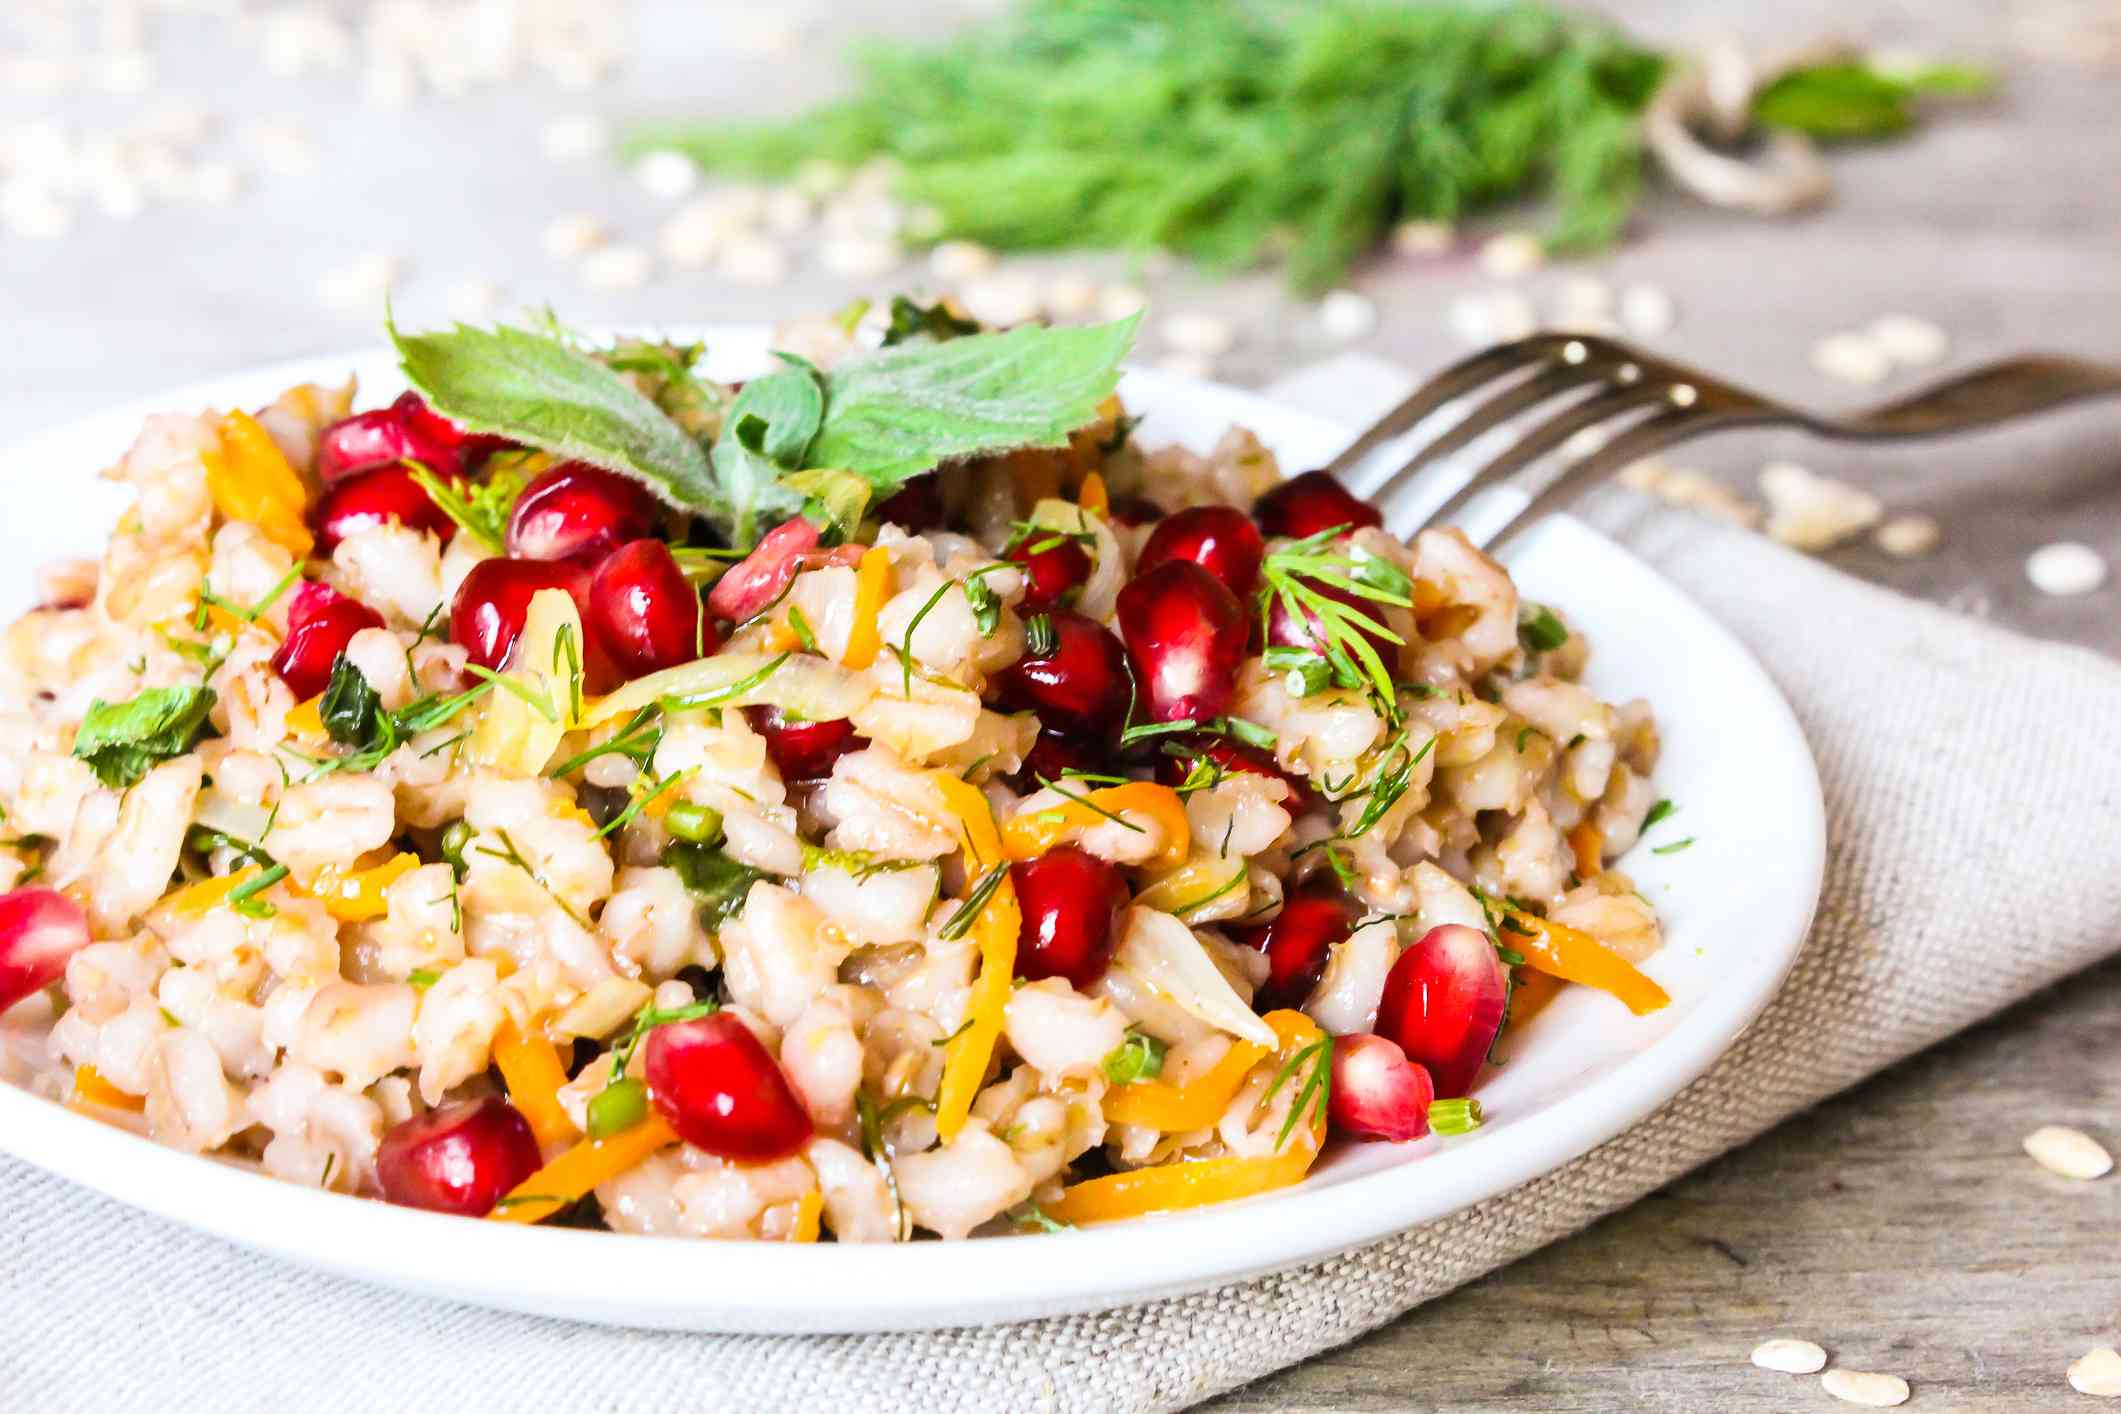 A barley salad with carrots, pomegranate seeds, and fresh mint